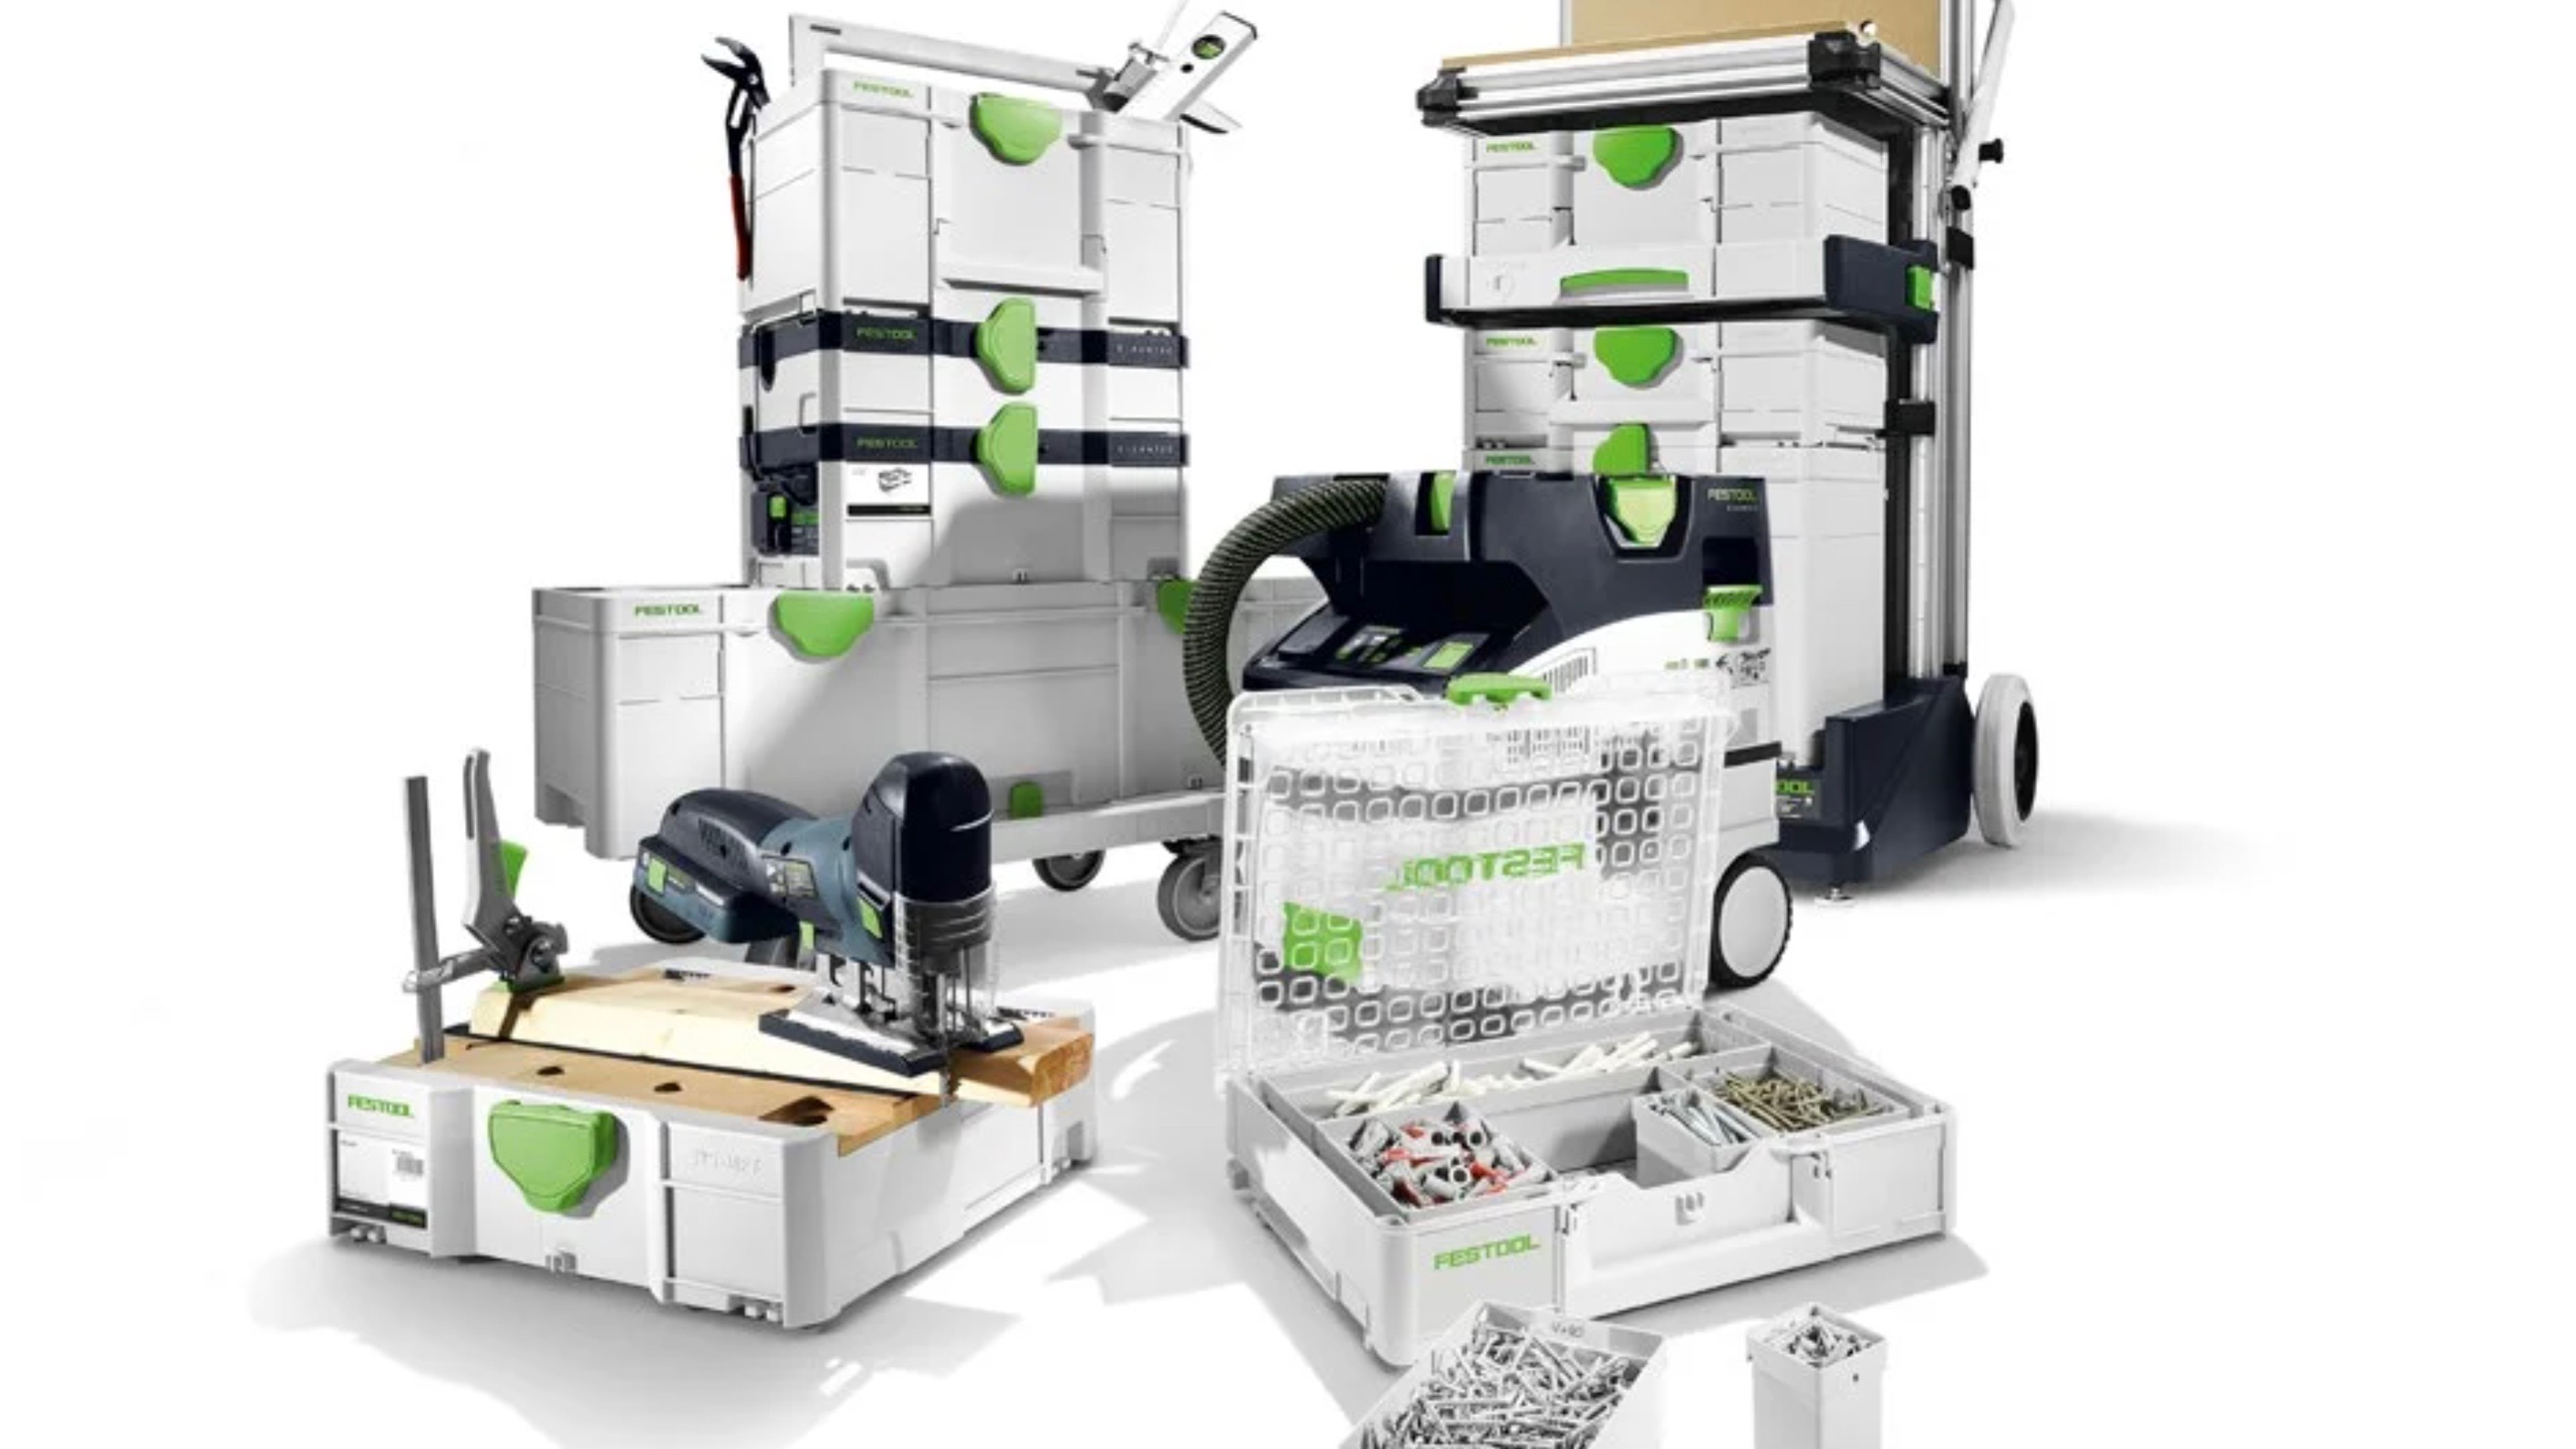 With Festool's Launch of Systainer3, It's Time to Get Organized